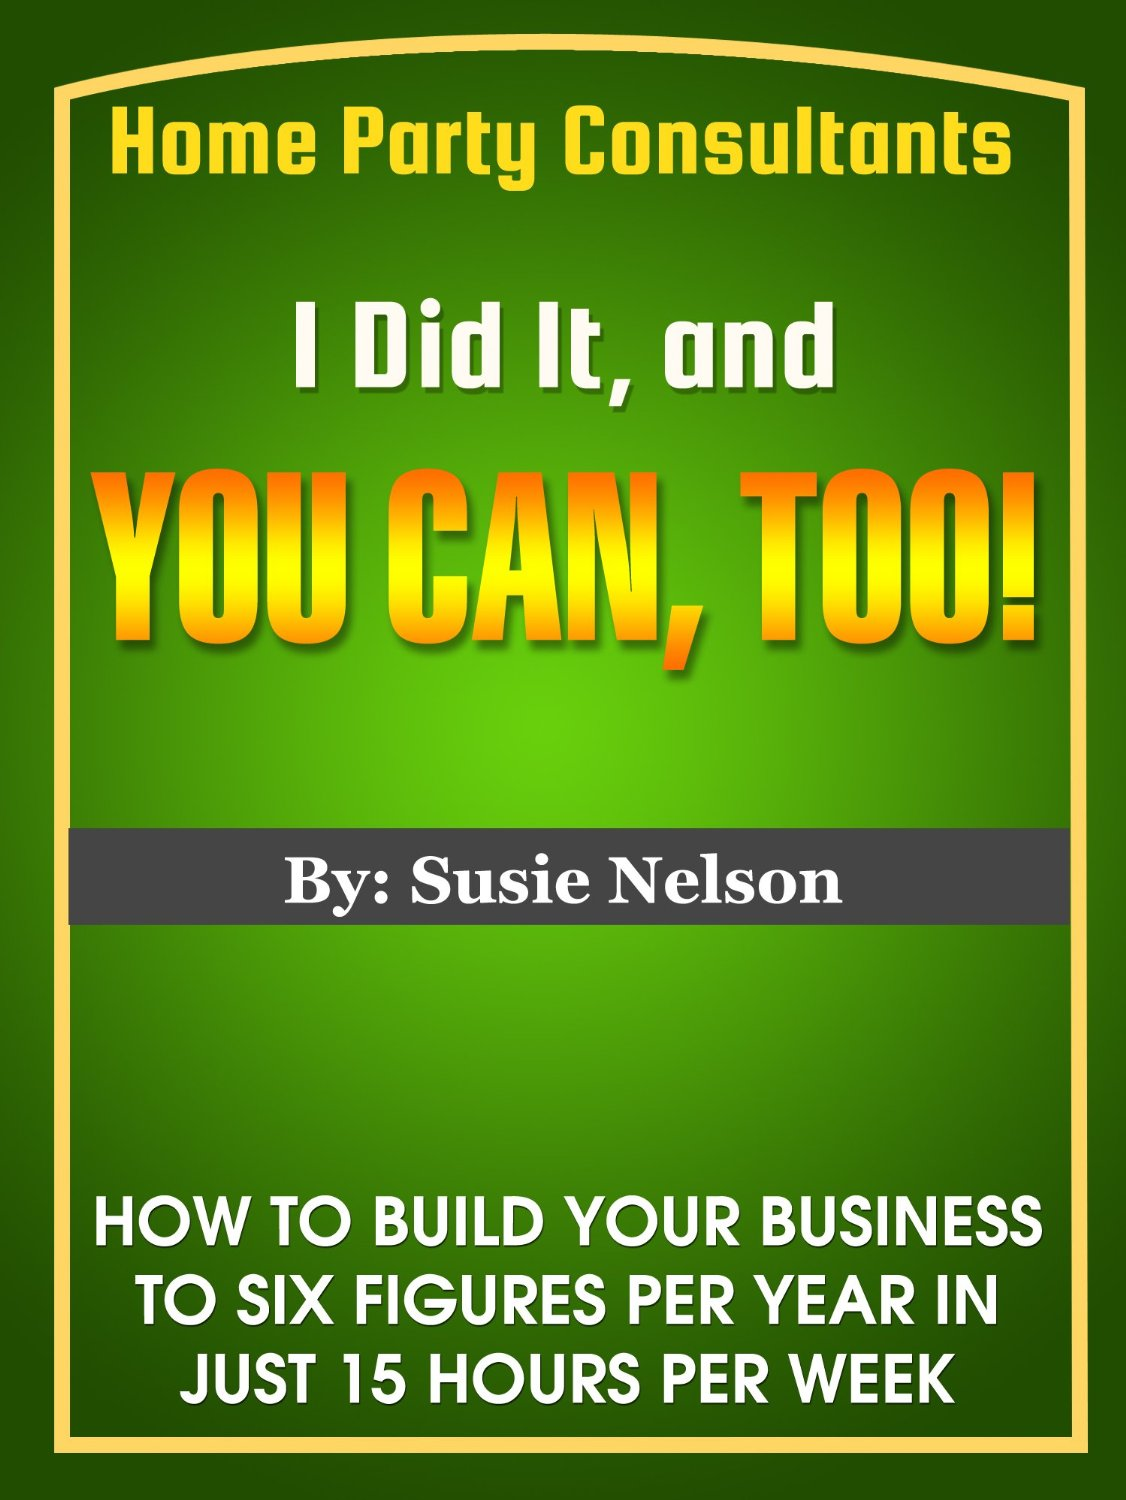 I Did It, and You Can, Too! How to Build Your Home Party Business to Six Figures in Just 15 Hours Per Week